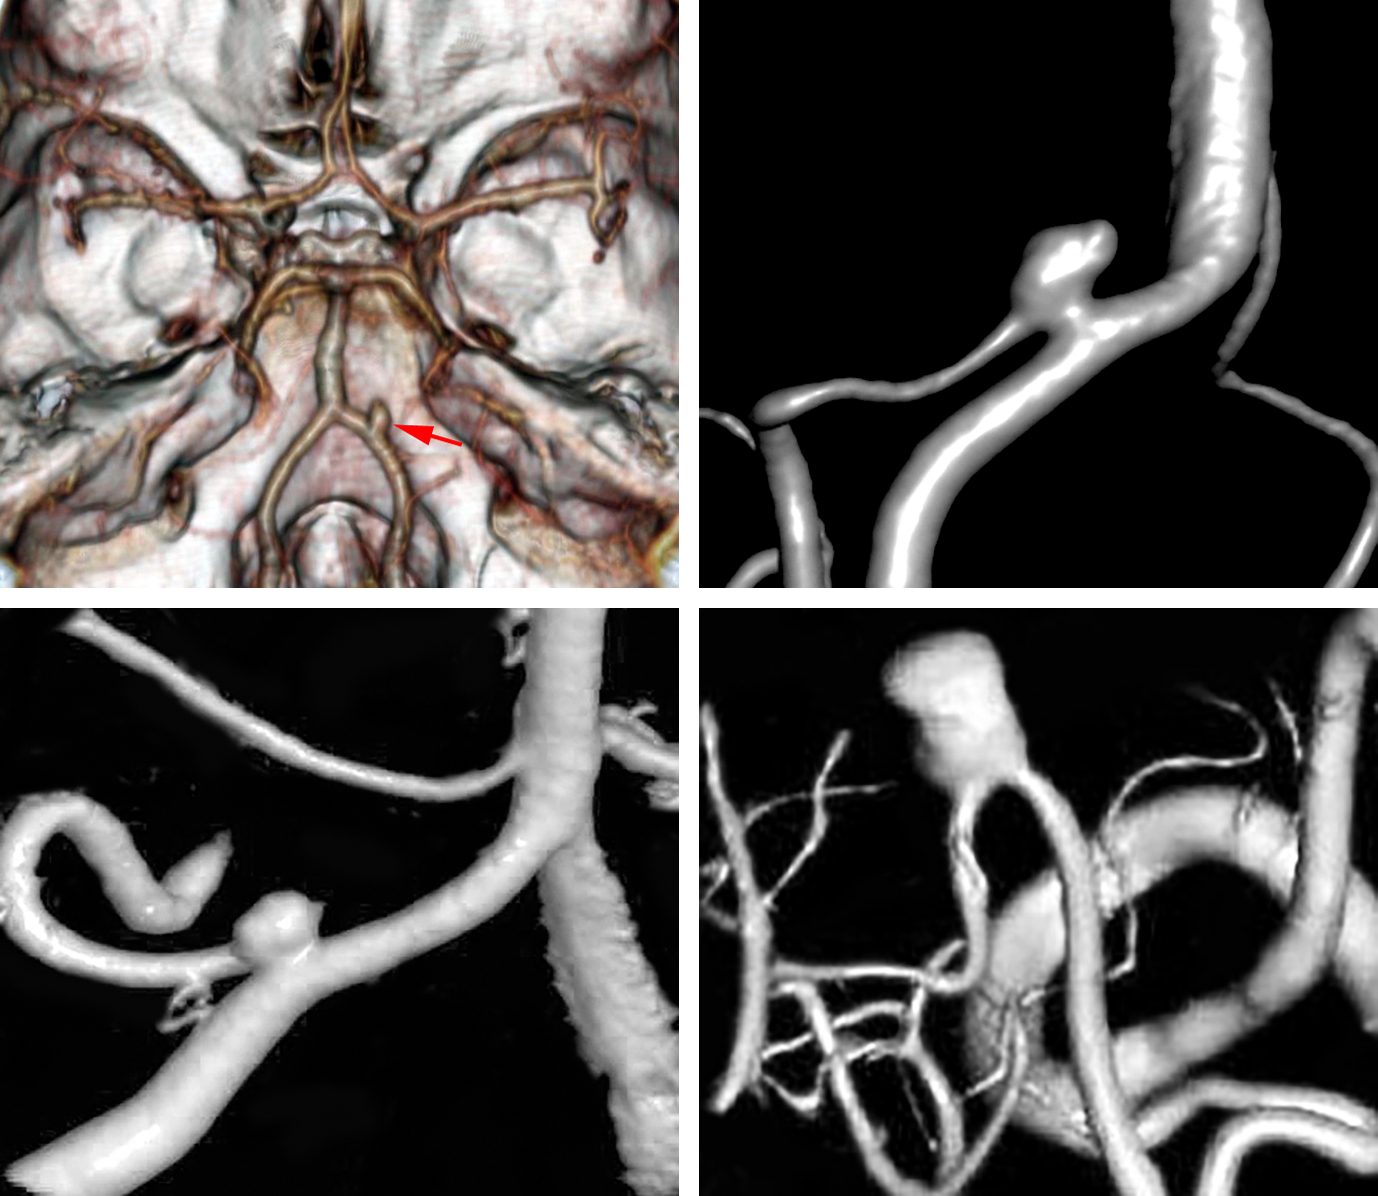 Figure 1: A medially located PICA aneurysm is demonstrated (upper images). Another more classic proximal (left lower image) and more distal AChA (right lower image) aneurysms are also included. Note the typical finding of the PICA's origin incorporated into the aneurysm neck.